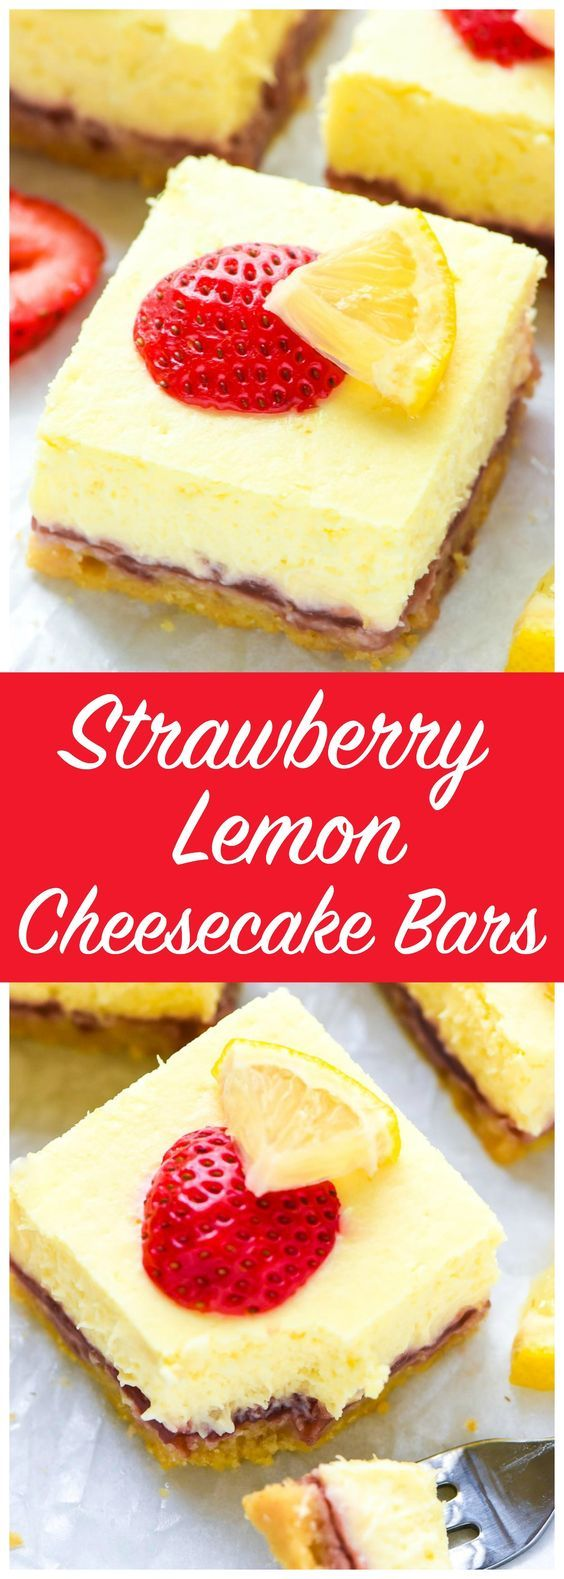 Creamy and rich Strawberry Lemon Cheesecake Bars — Layers of buttery shortbread crust, strawberry jam, and creamiest lemon cheesecake. The perfect summer dessert for any picnic or potluck! Recipe at www.wellplated.com @wellplated